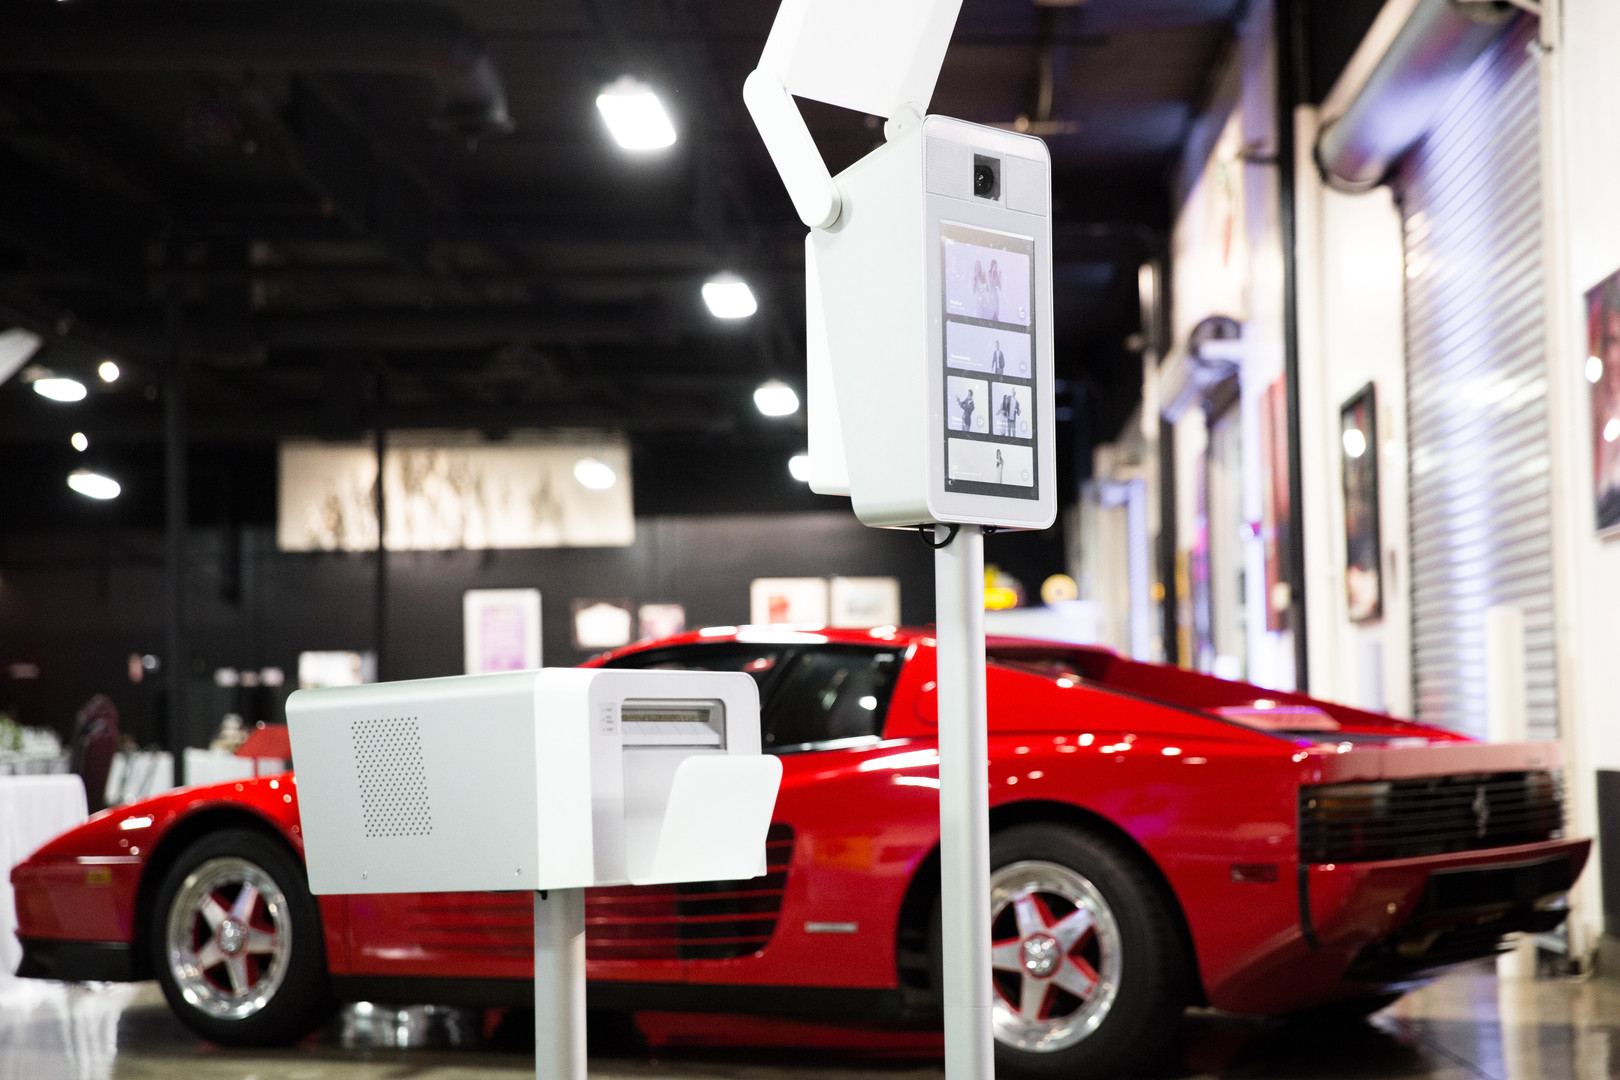 Our Queso Photo Booth looks right in place at an auto museum